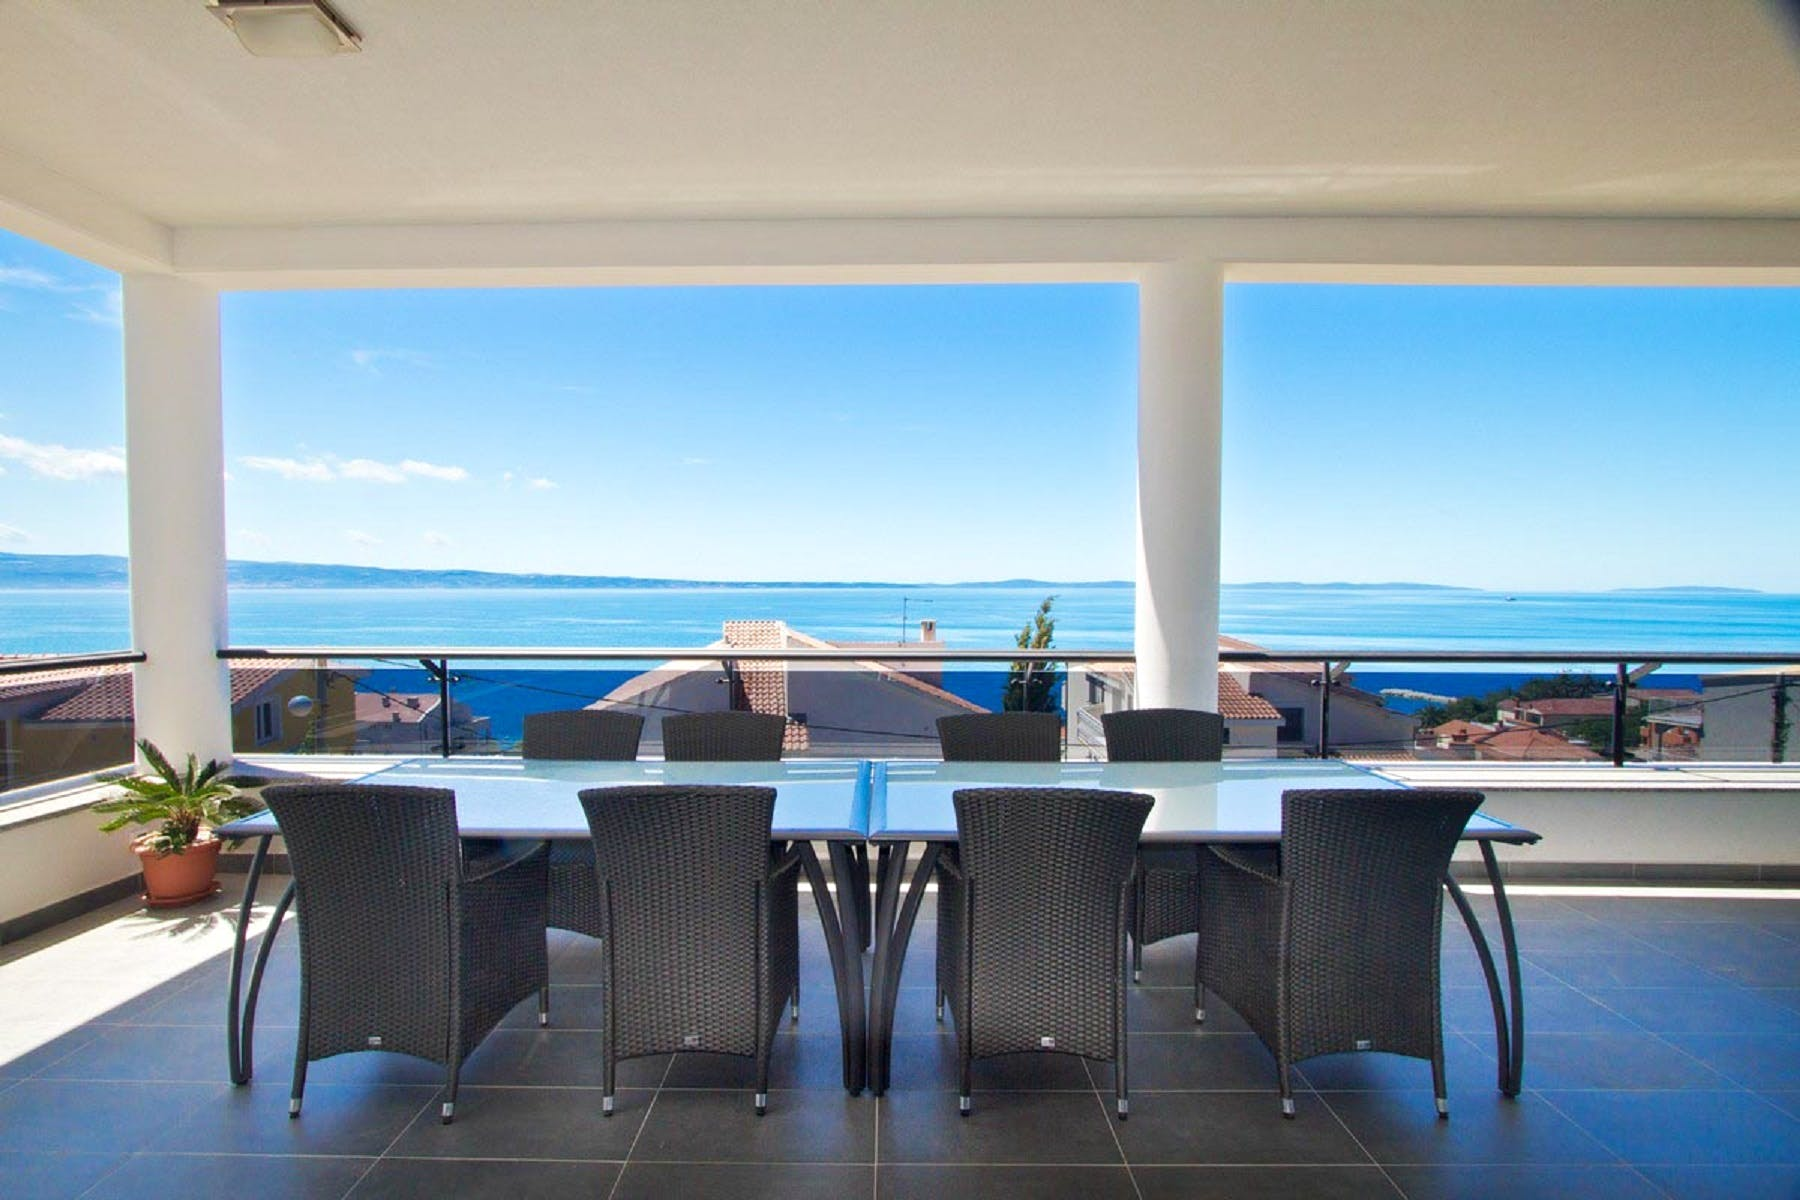 Outdoor lounge area with seaview